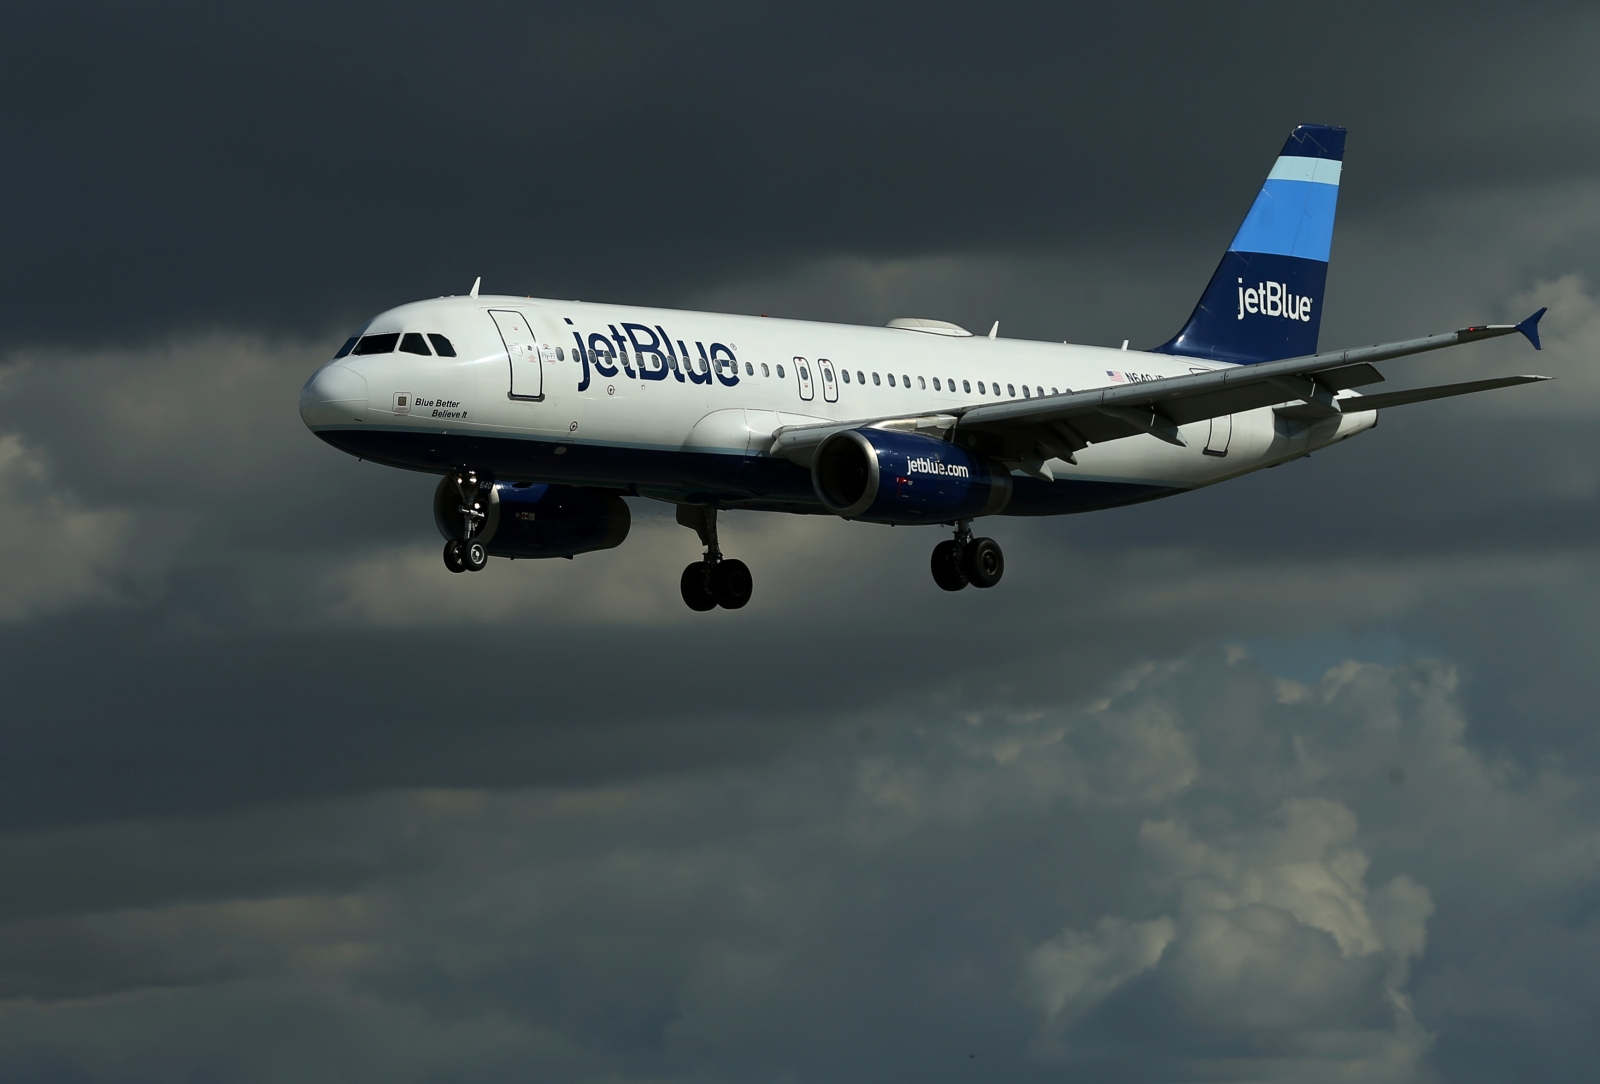 JetBlue flight diverted after laptop battery fire